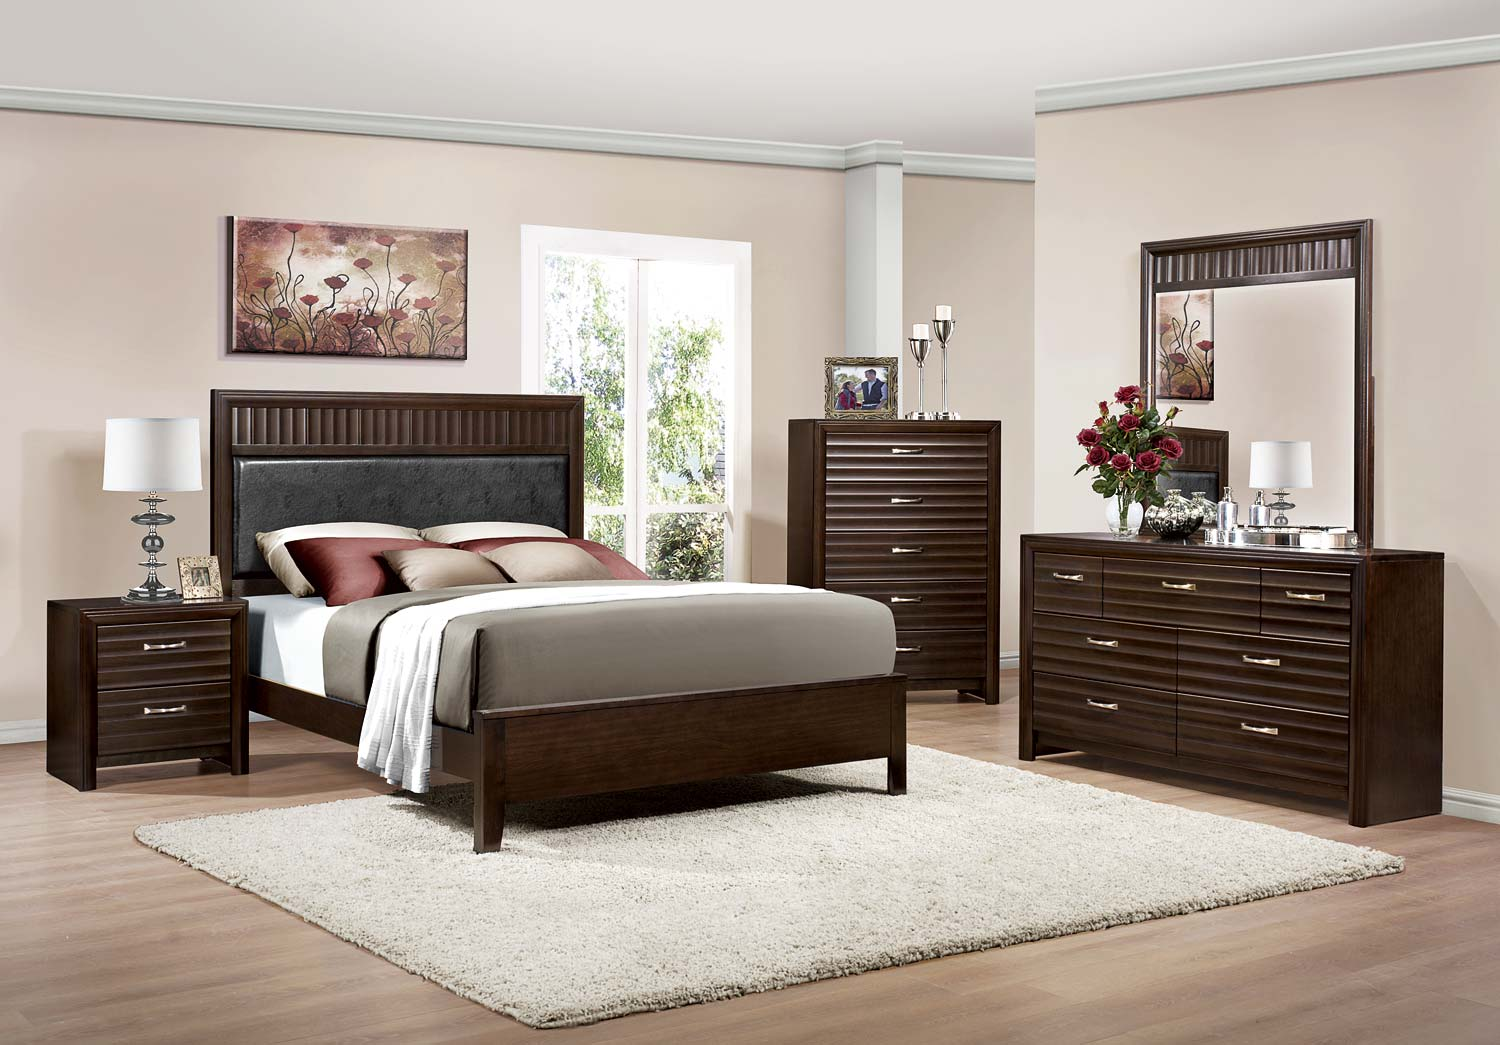 Homelegance Hilton Bedroom Set Espresso B2216 BED SET